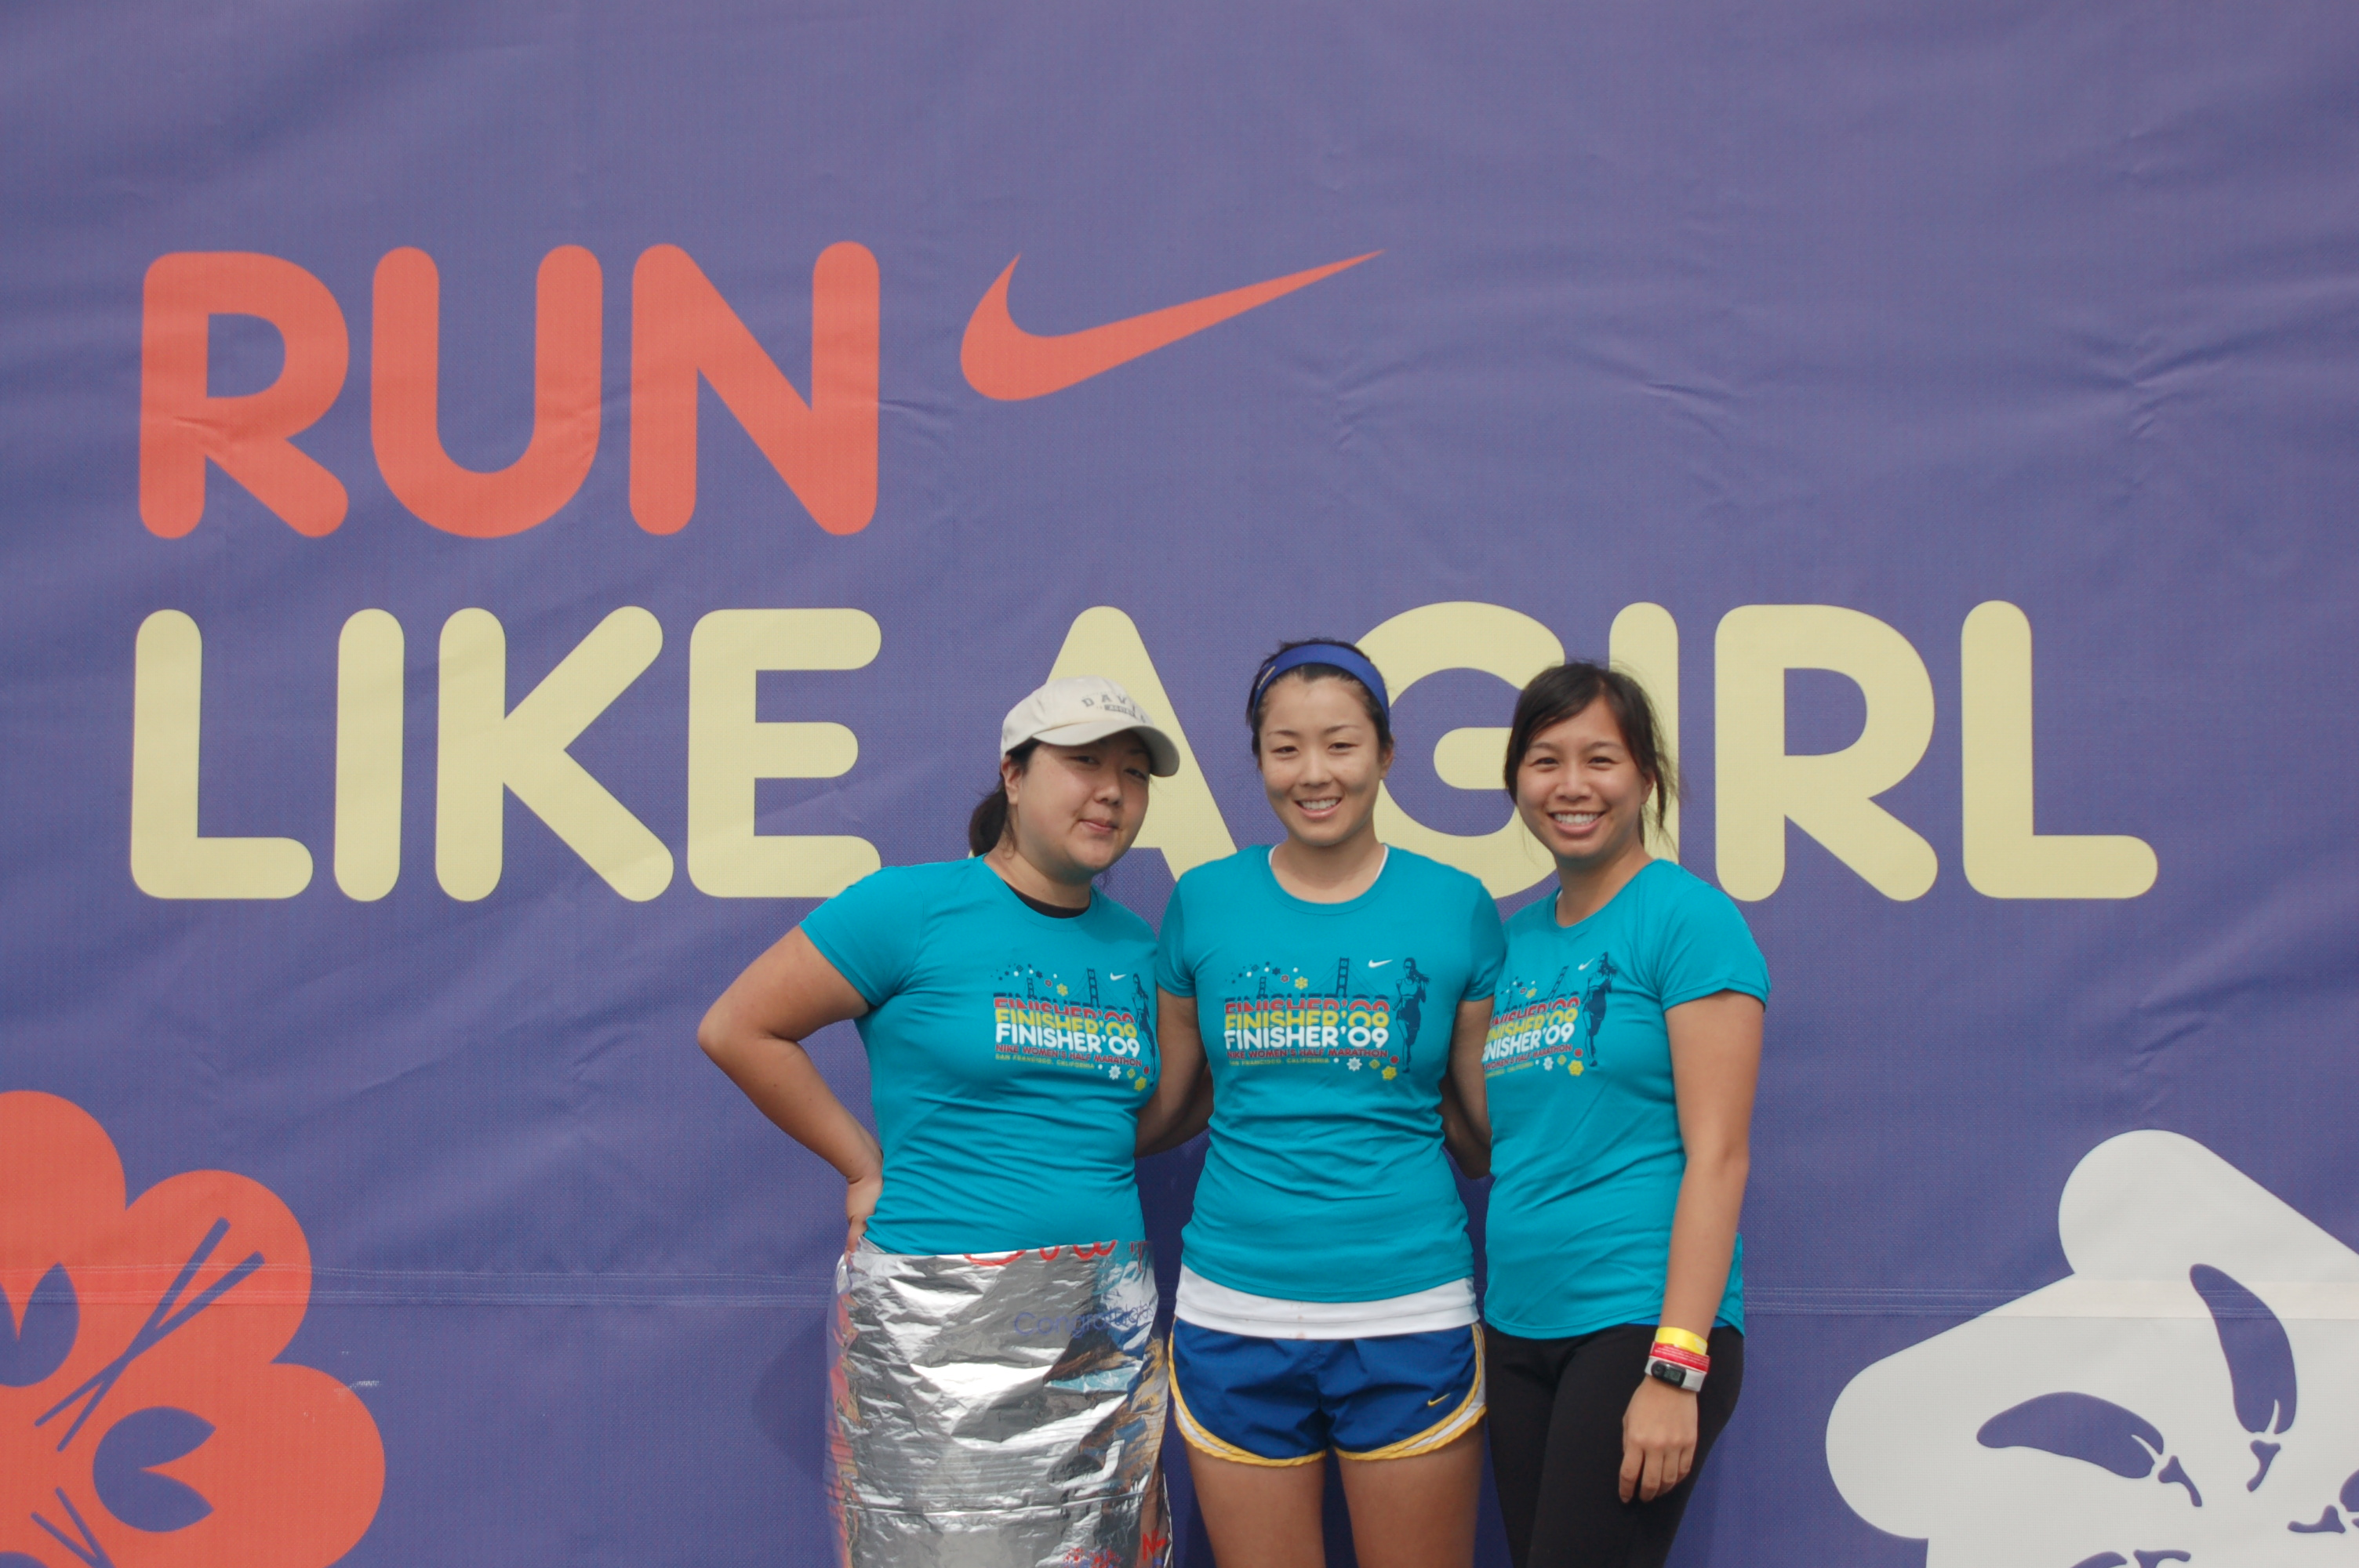 Nike told us to run like a girl.  So we did.